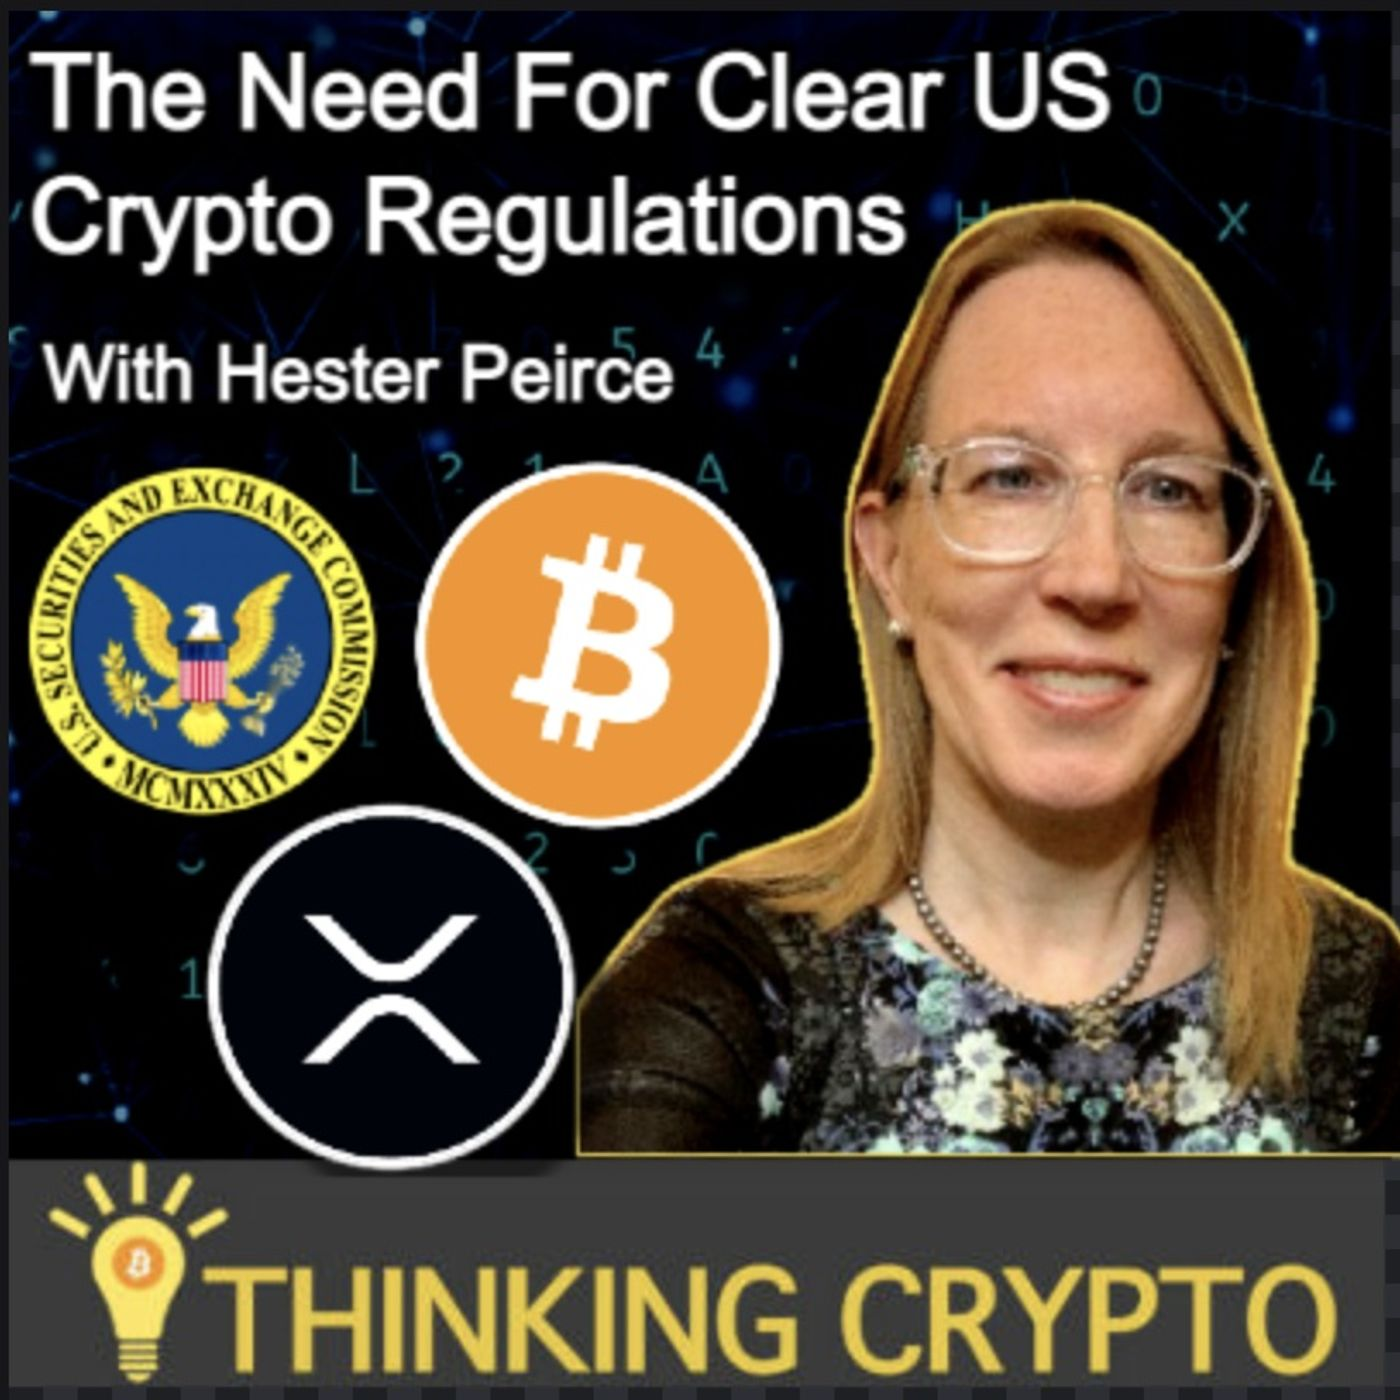 Hester Peirce Interview - The SEC & US Crypto Regulations - Bitcoin ETF, Stablecoins, NFTs